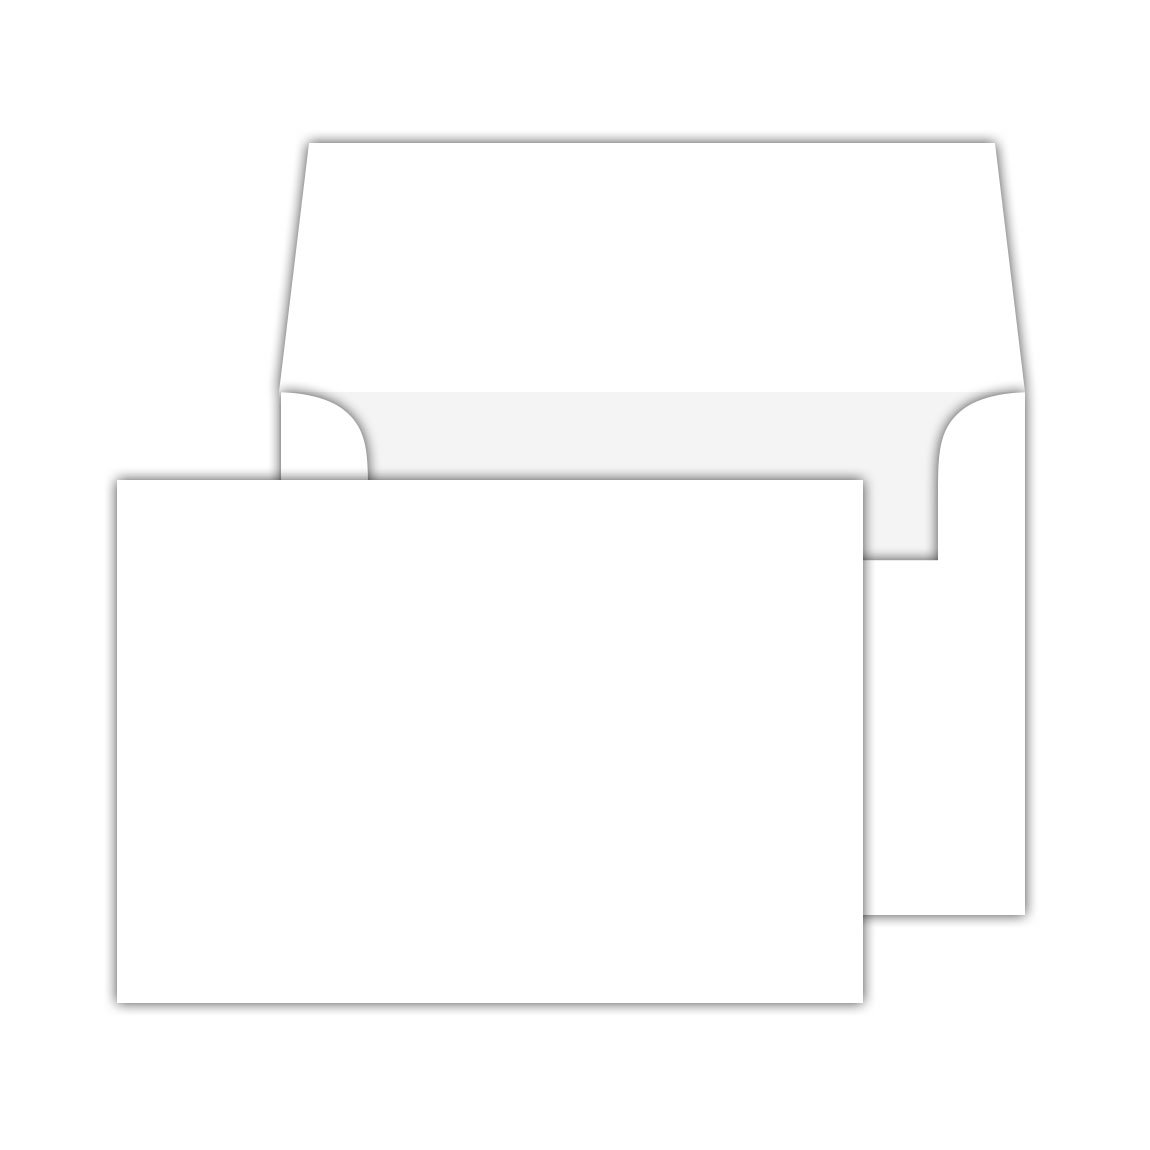 Blank Note Flat Cards and Envelopes, Made From Bright White Heavyweight Thick Cardstock | 5 X 7 Inches (A7) | 50 Cards and Envelopes Per Pack | Not a Fold Over Card